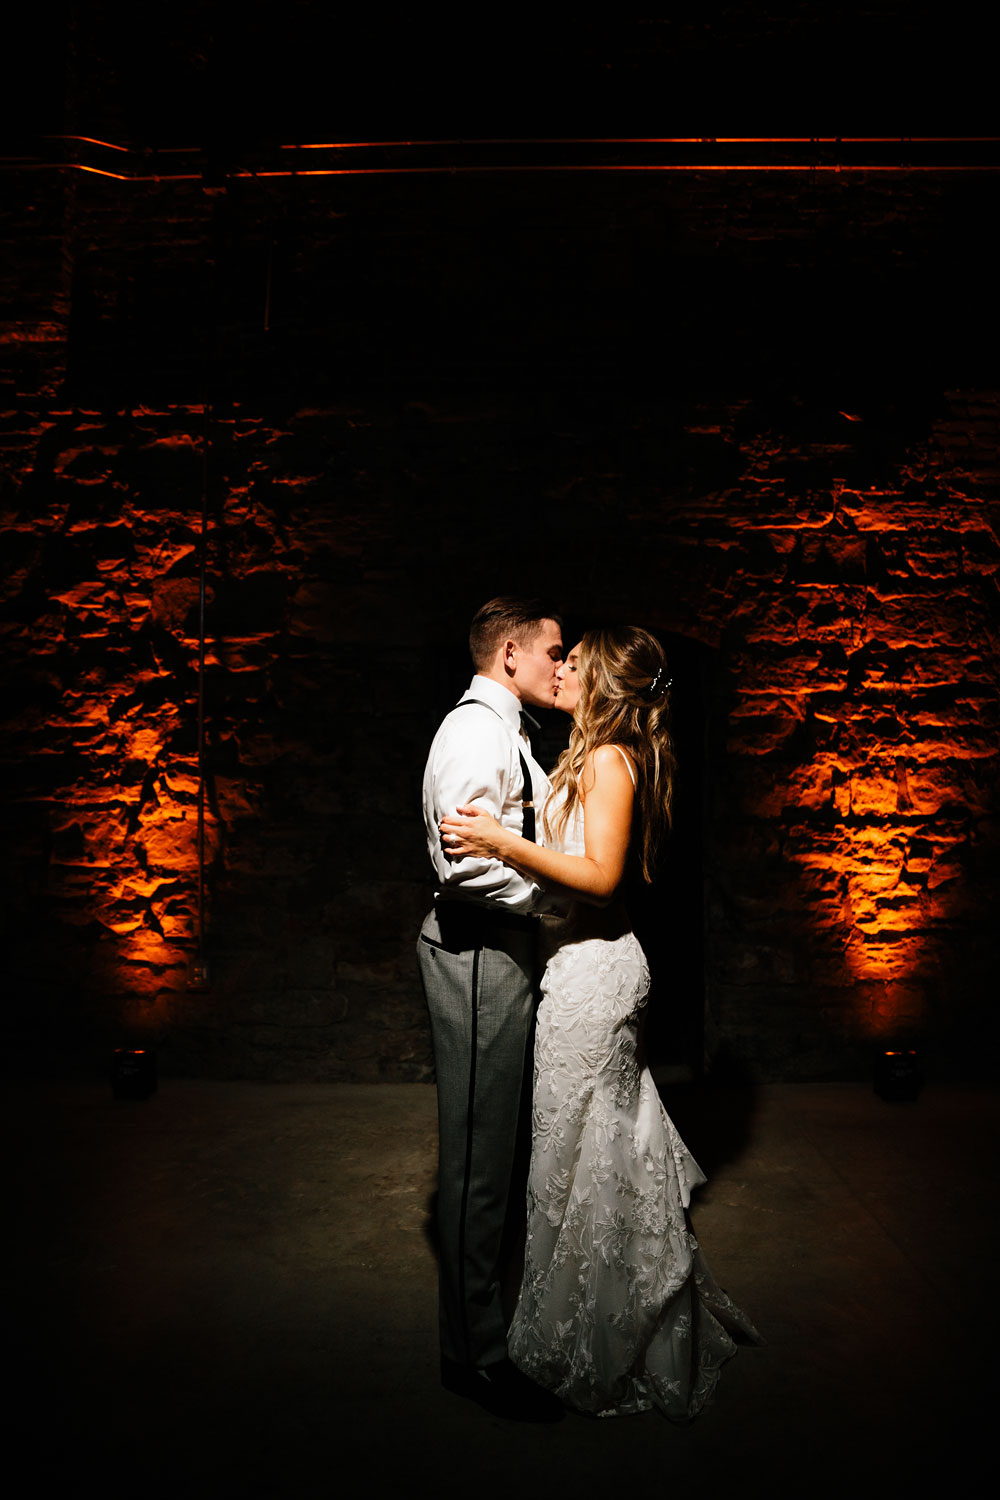 tenk-west-bank-flats-photography-wedding-photographers-in-cleveland-downtown-industrial-199.jpg